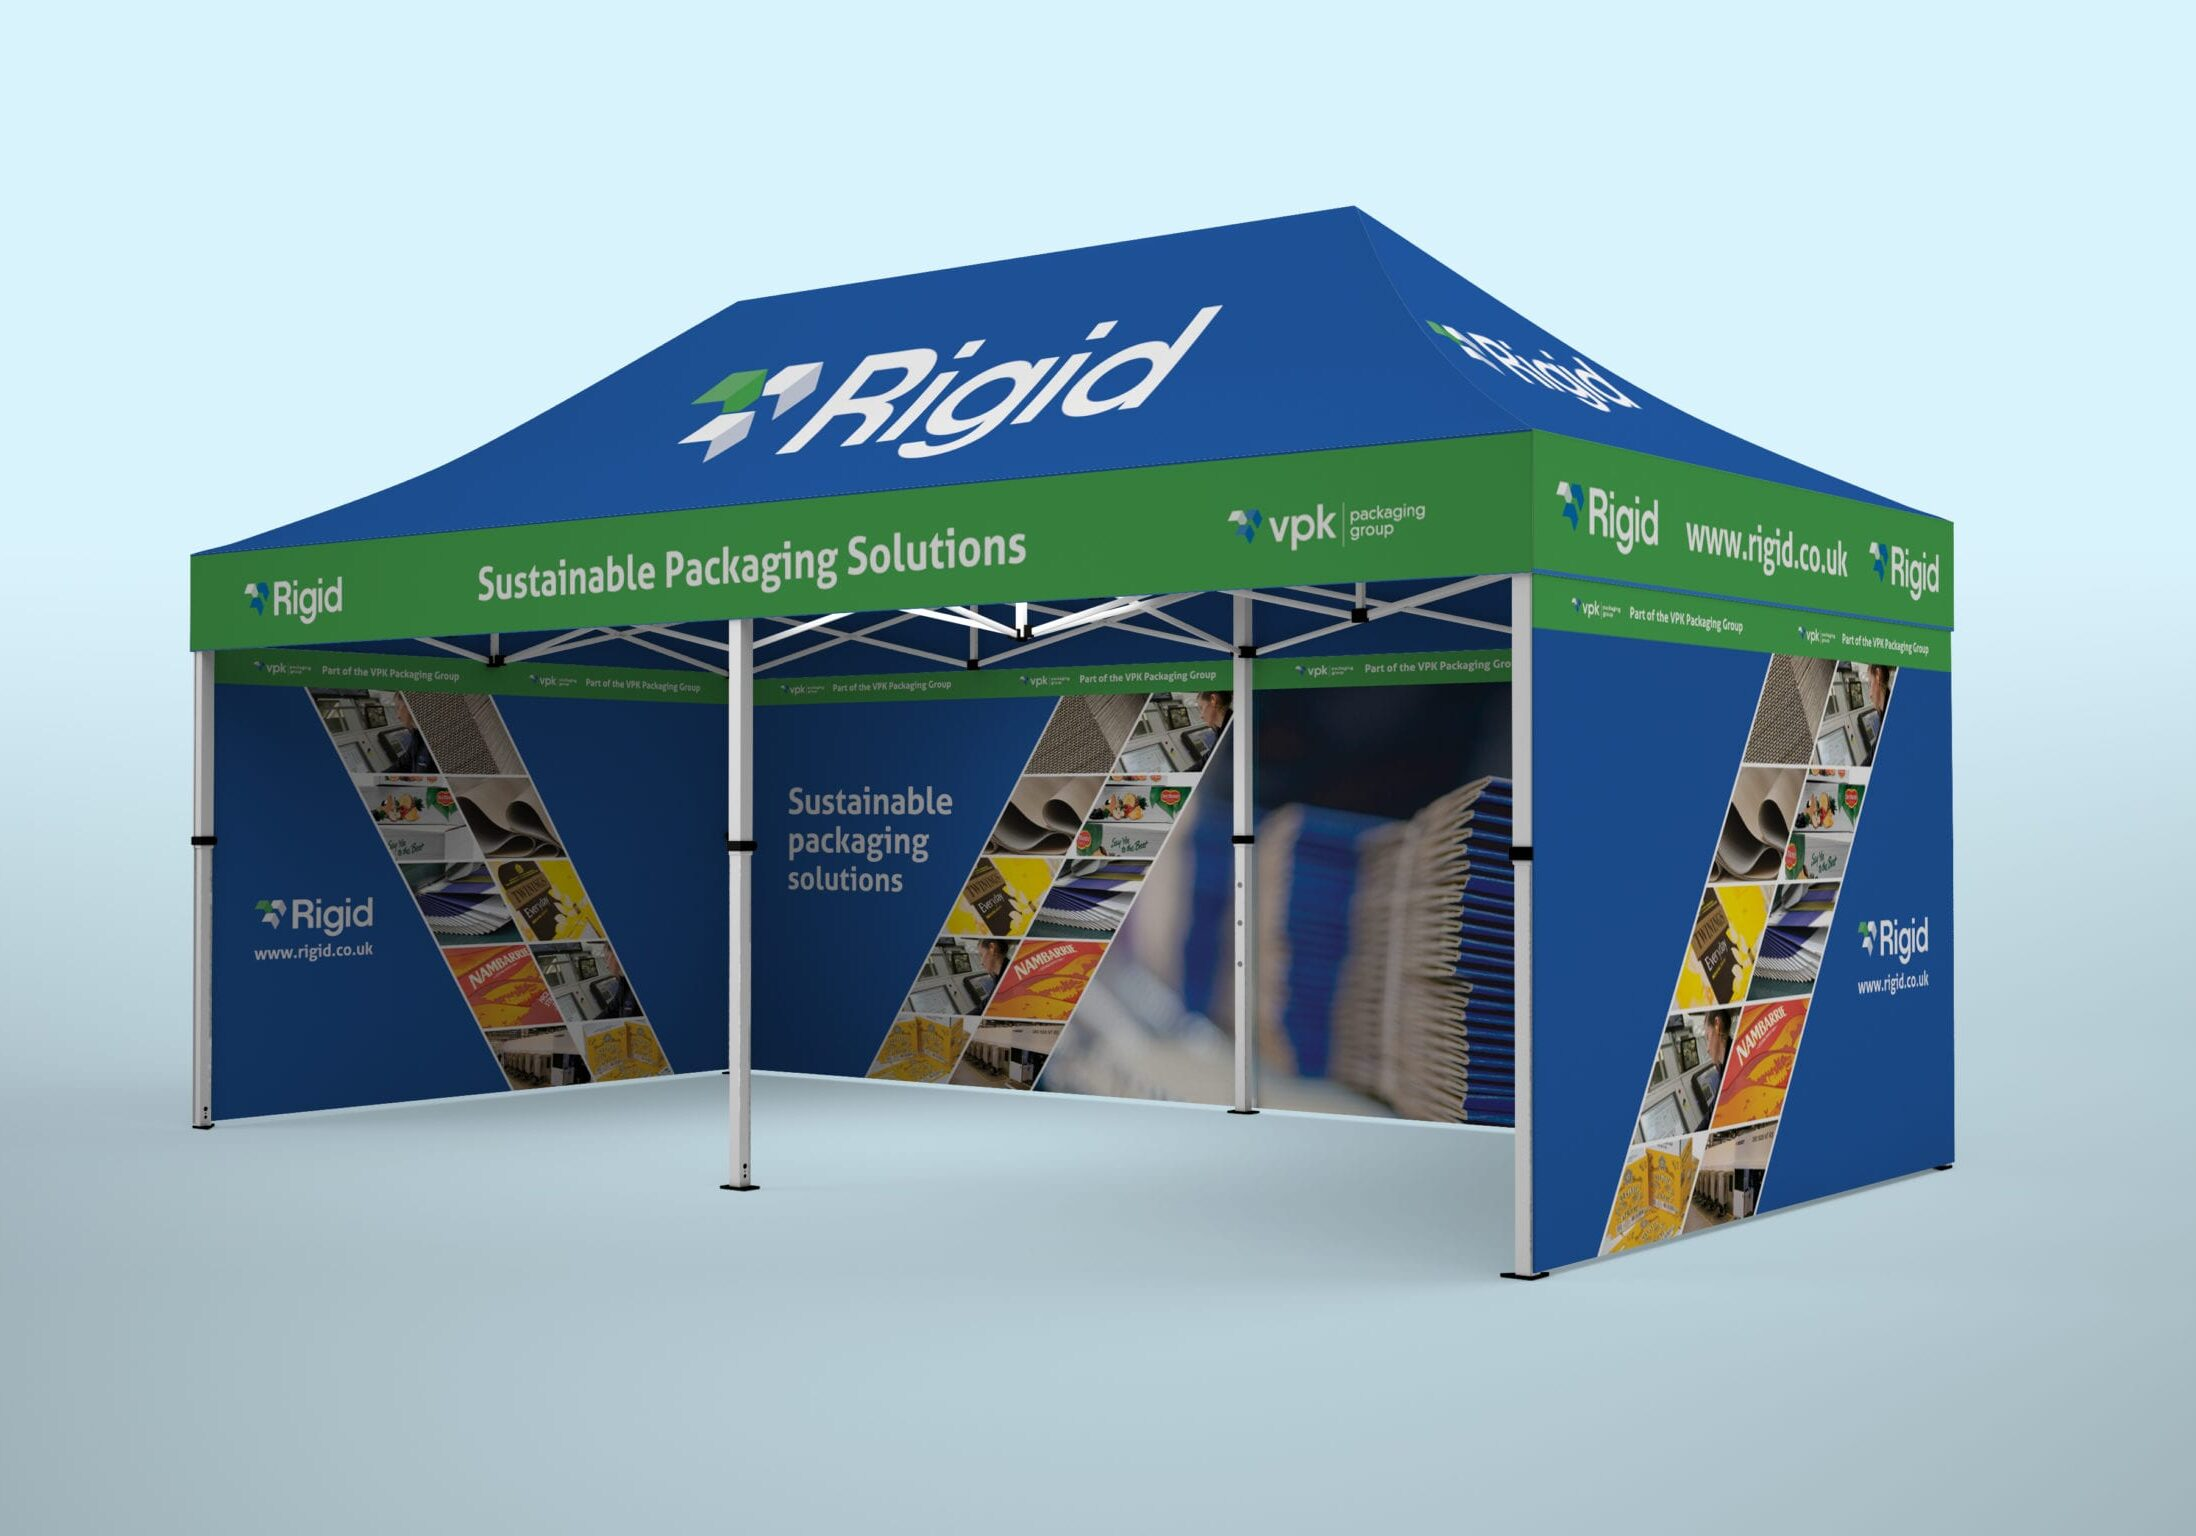 Gazebo design for Rigid Containers (now VPK)